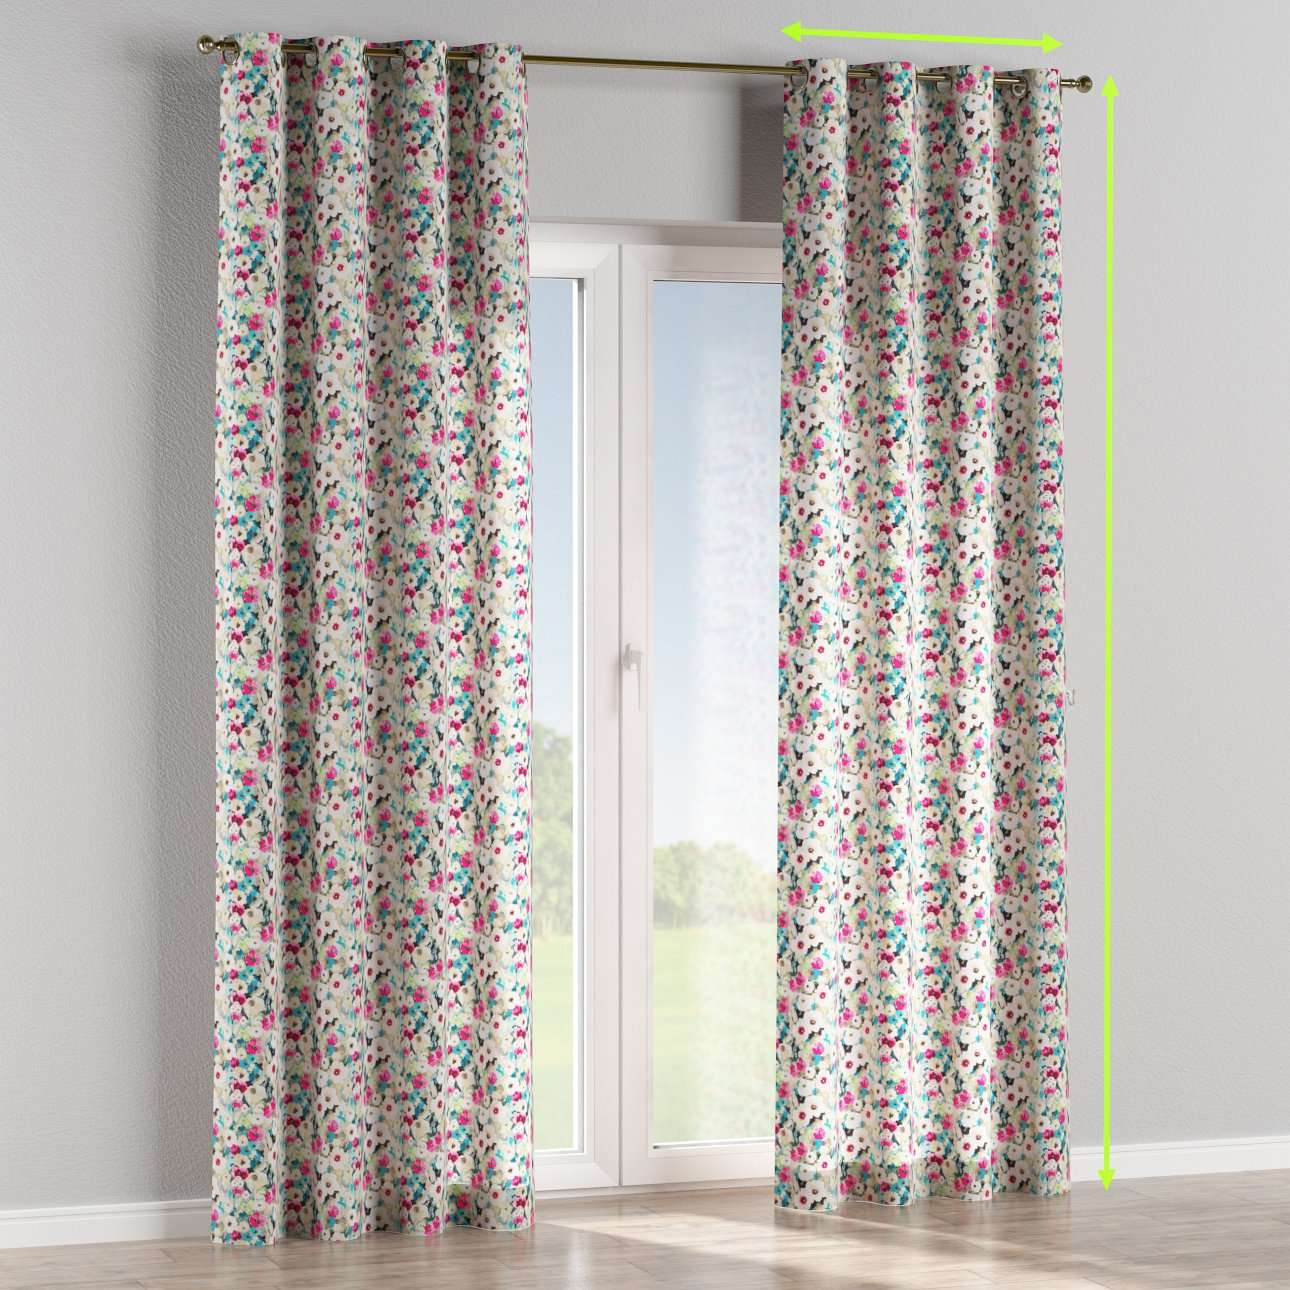 Eyelet lined curtains in collection Monet, fabric: 140-10